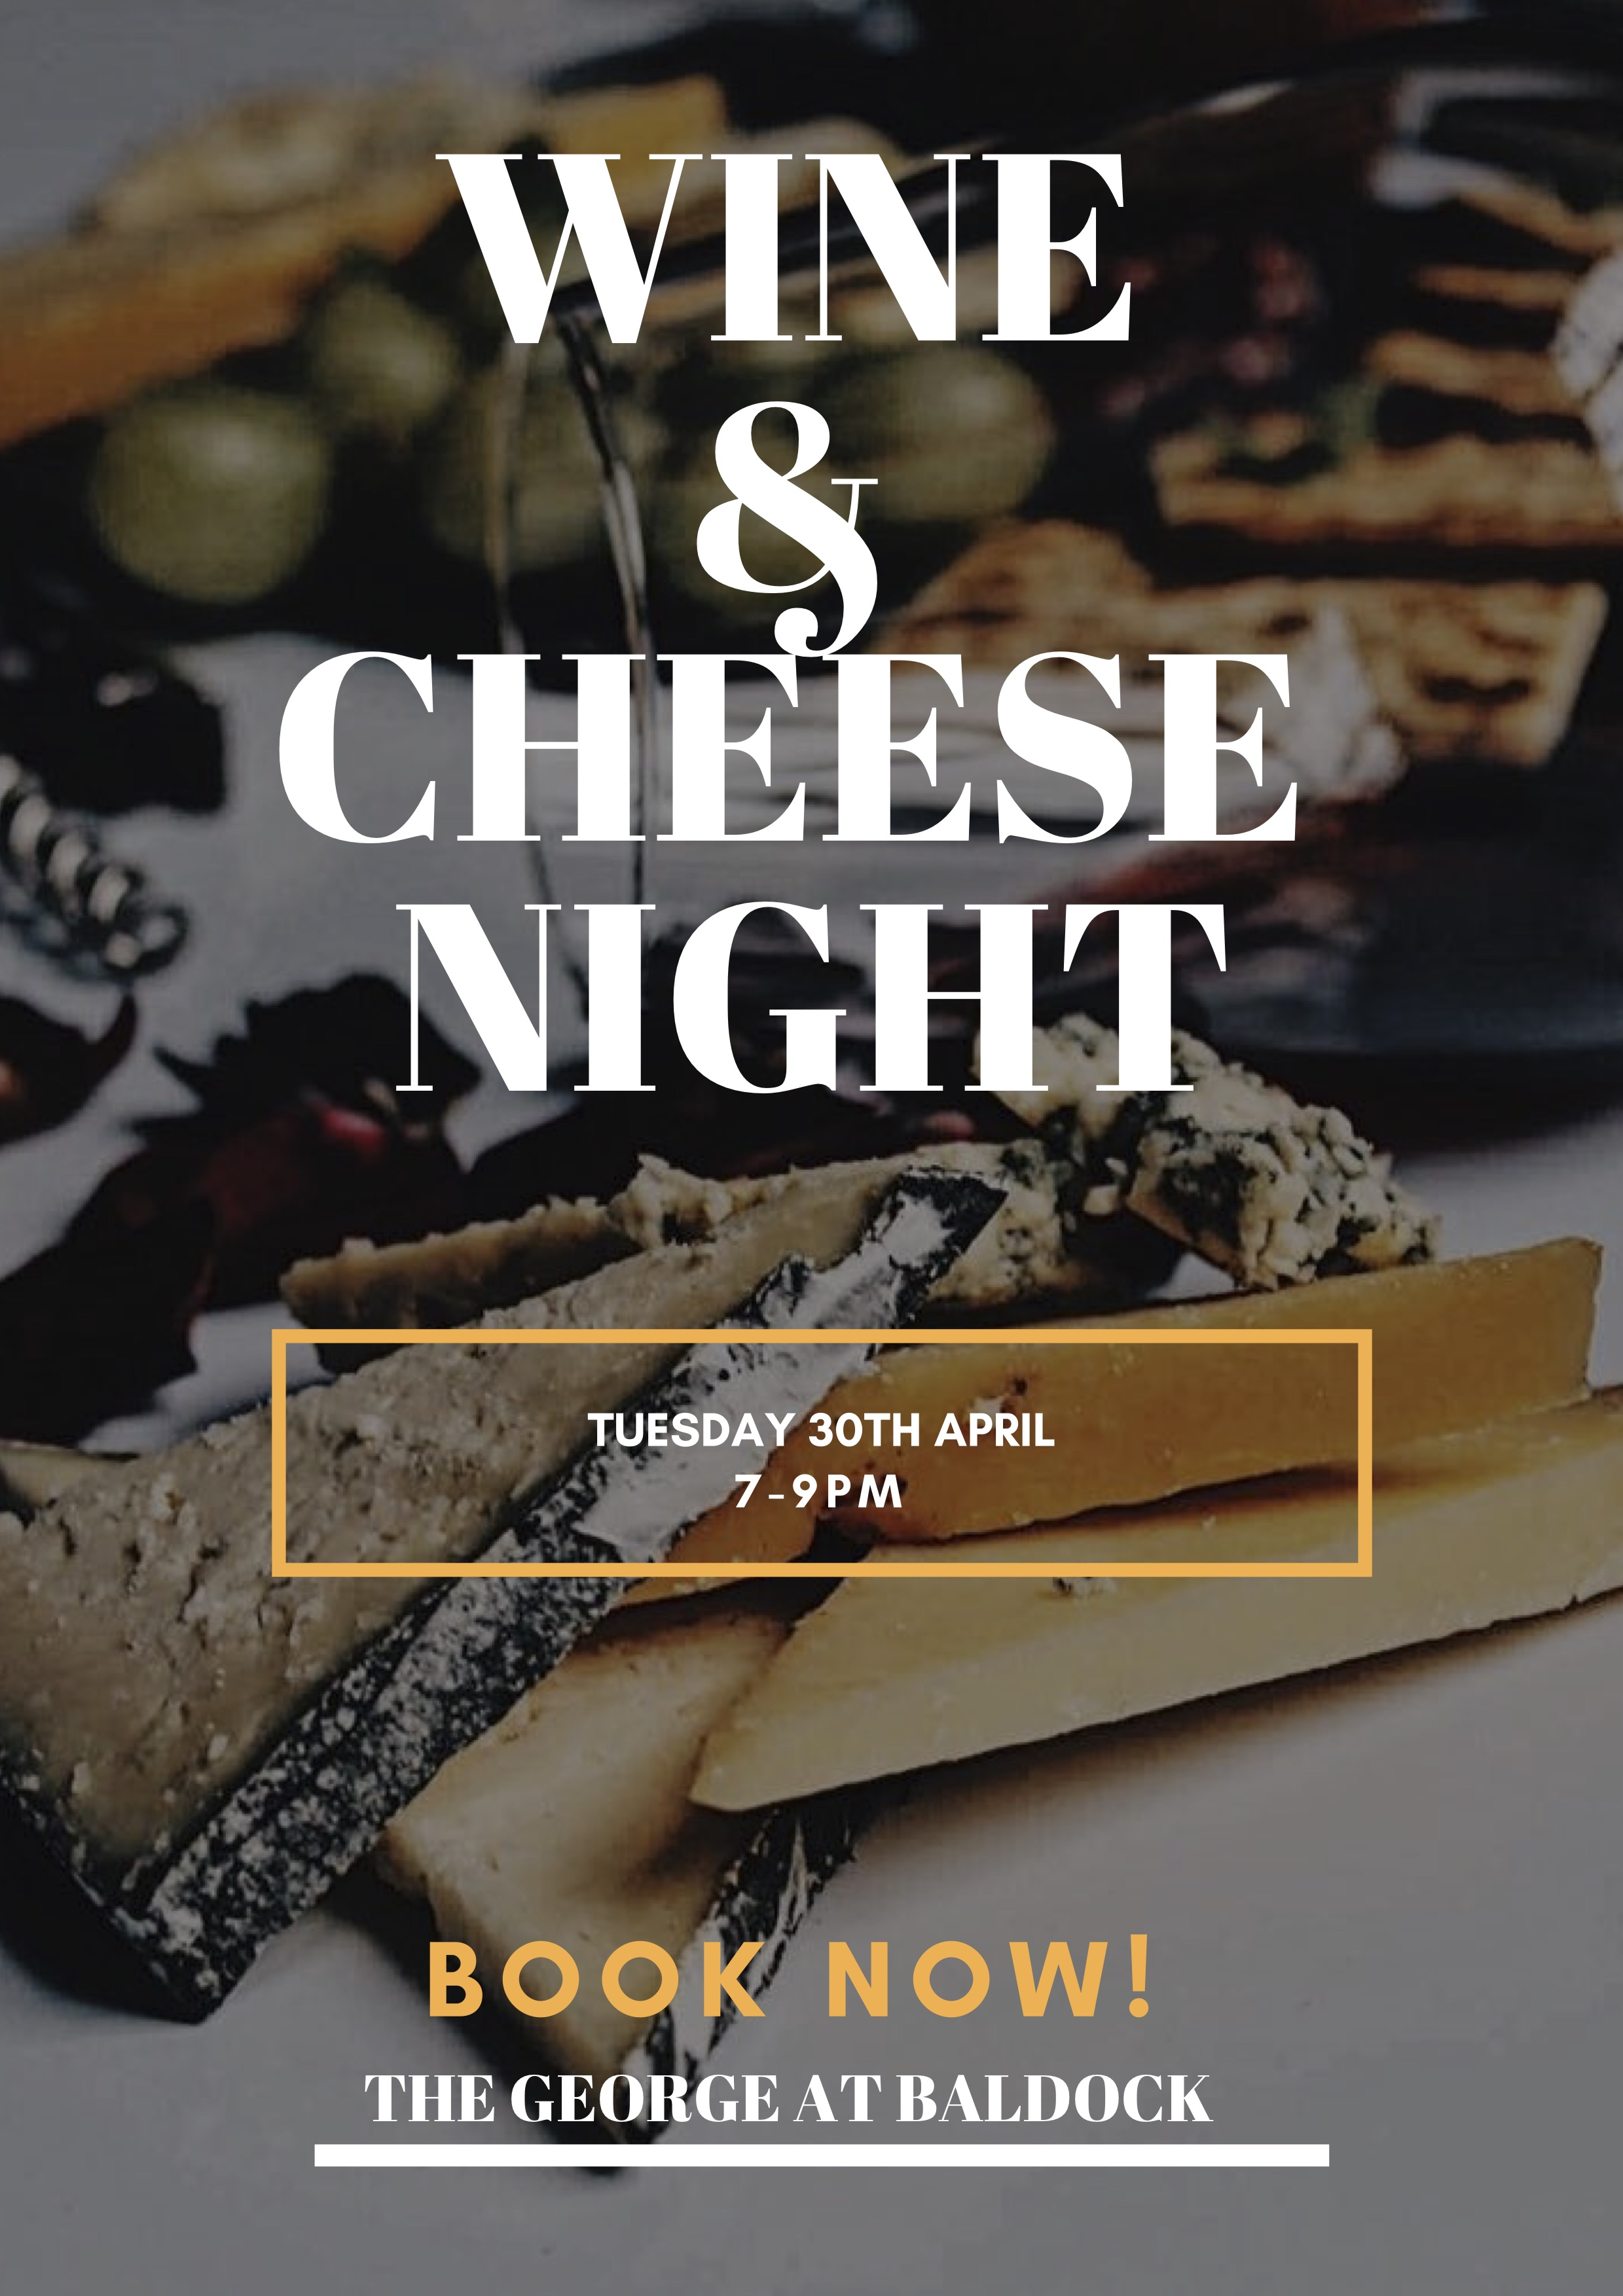 wine & cheese night (1).jpg